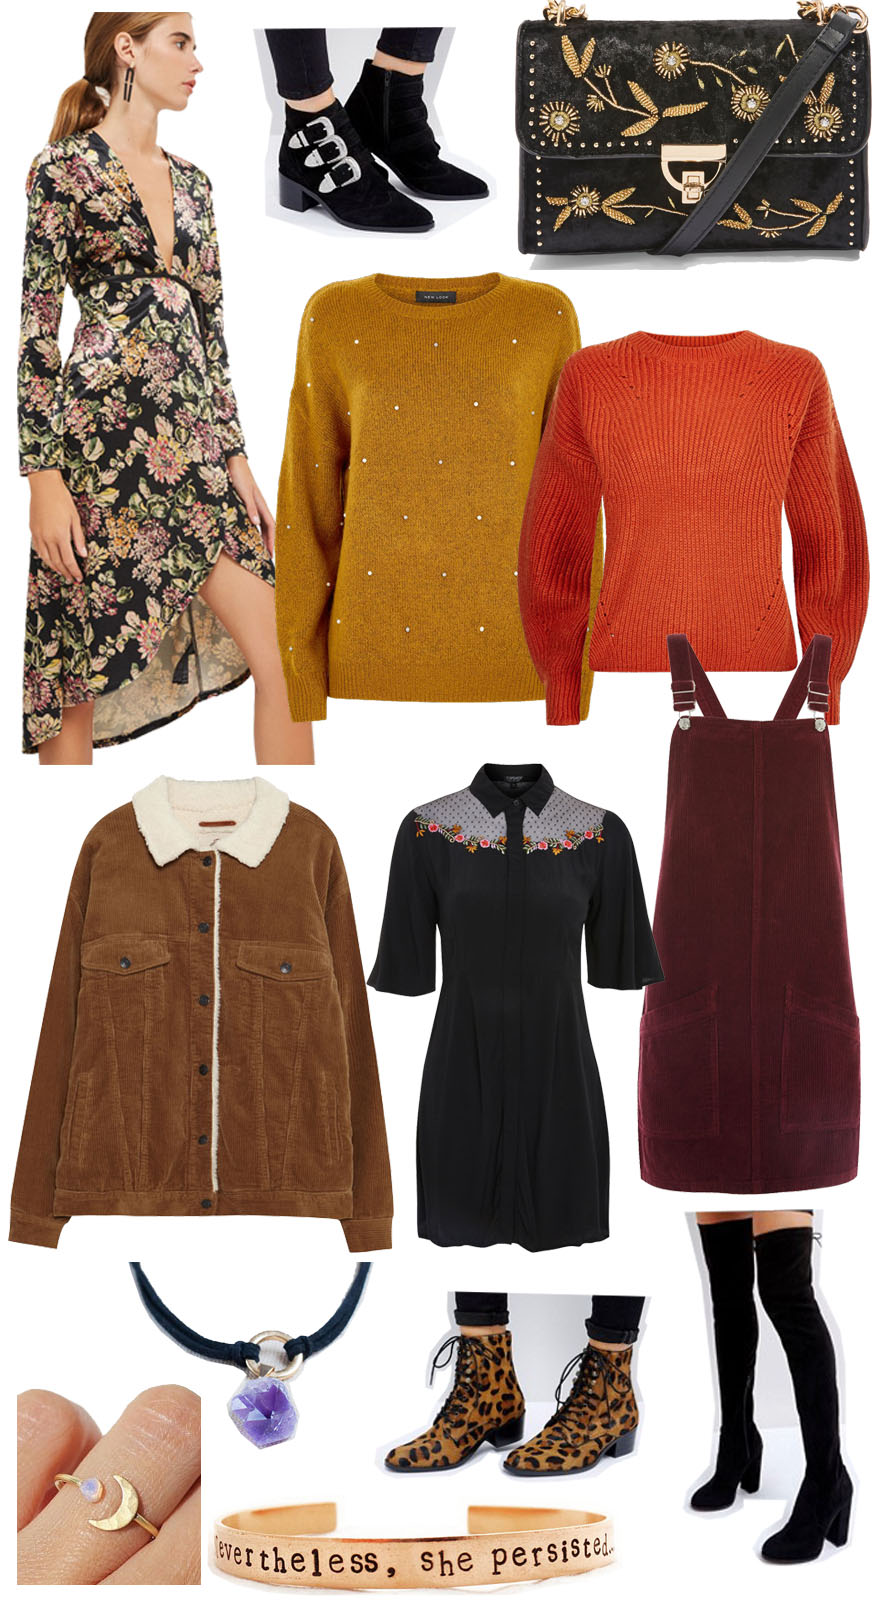 Autumn wishlist mood board